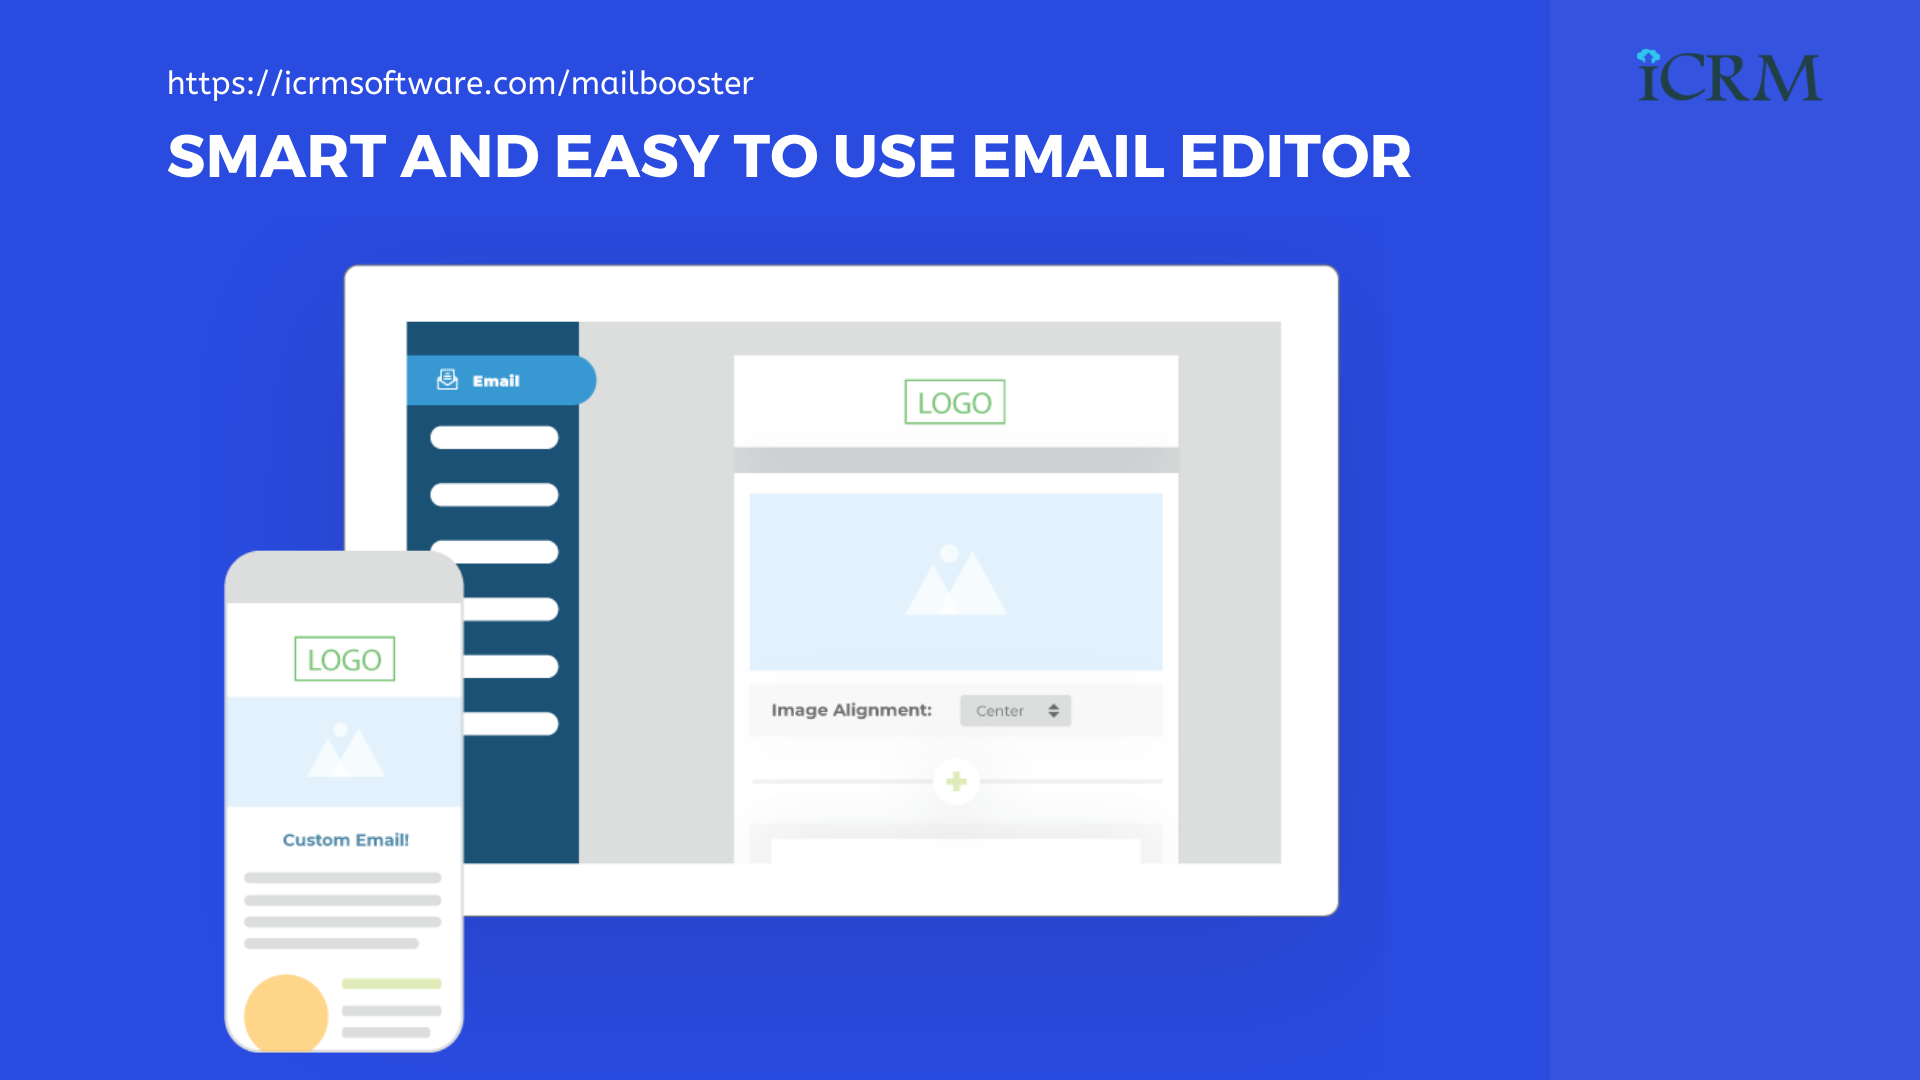 Smart and easy to use email template editor ICRM Mailbooster - AI-Based Email Marketing Application